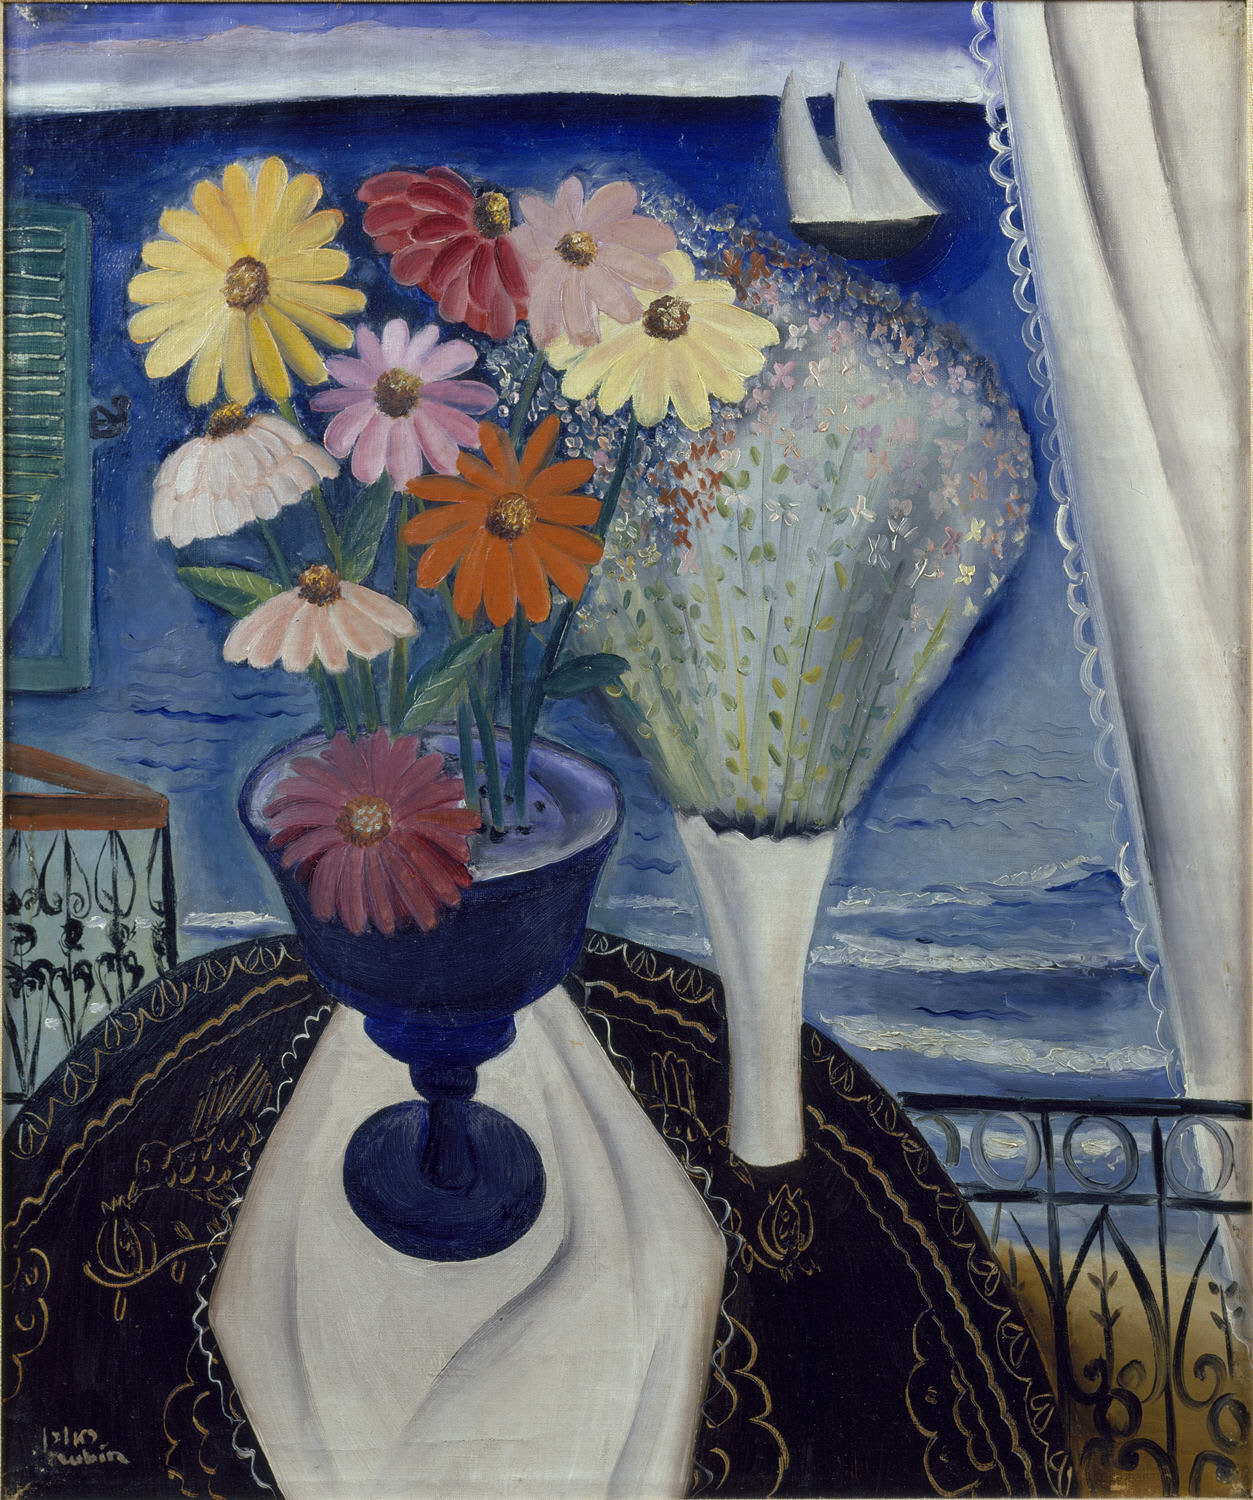 Two delicately painted vases of flowers sit on a table. Behind the flowers, a seascape with a sailboat in the distance.